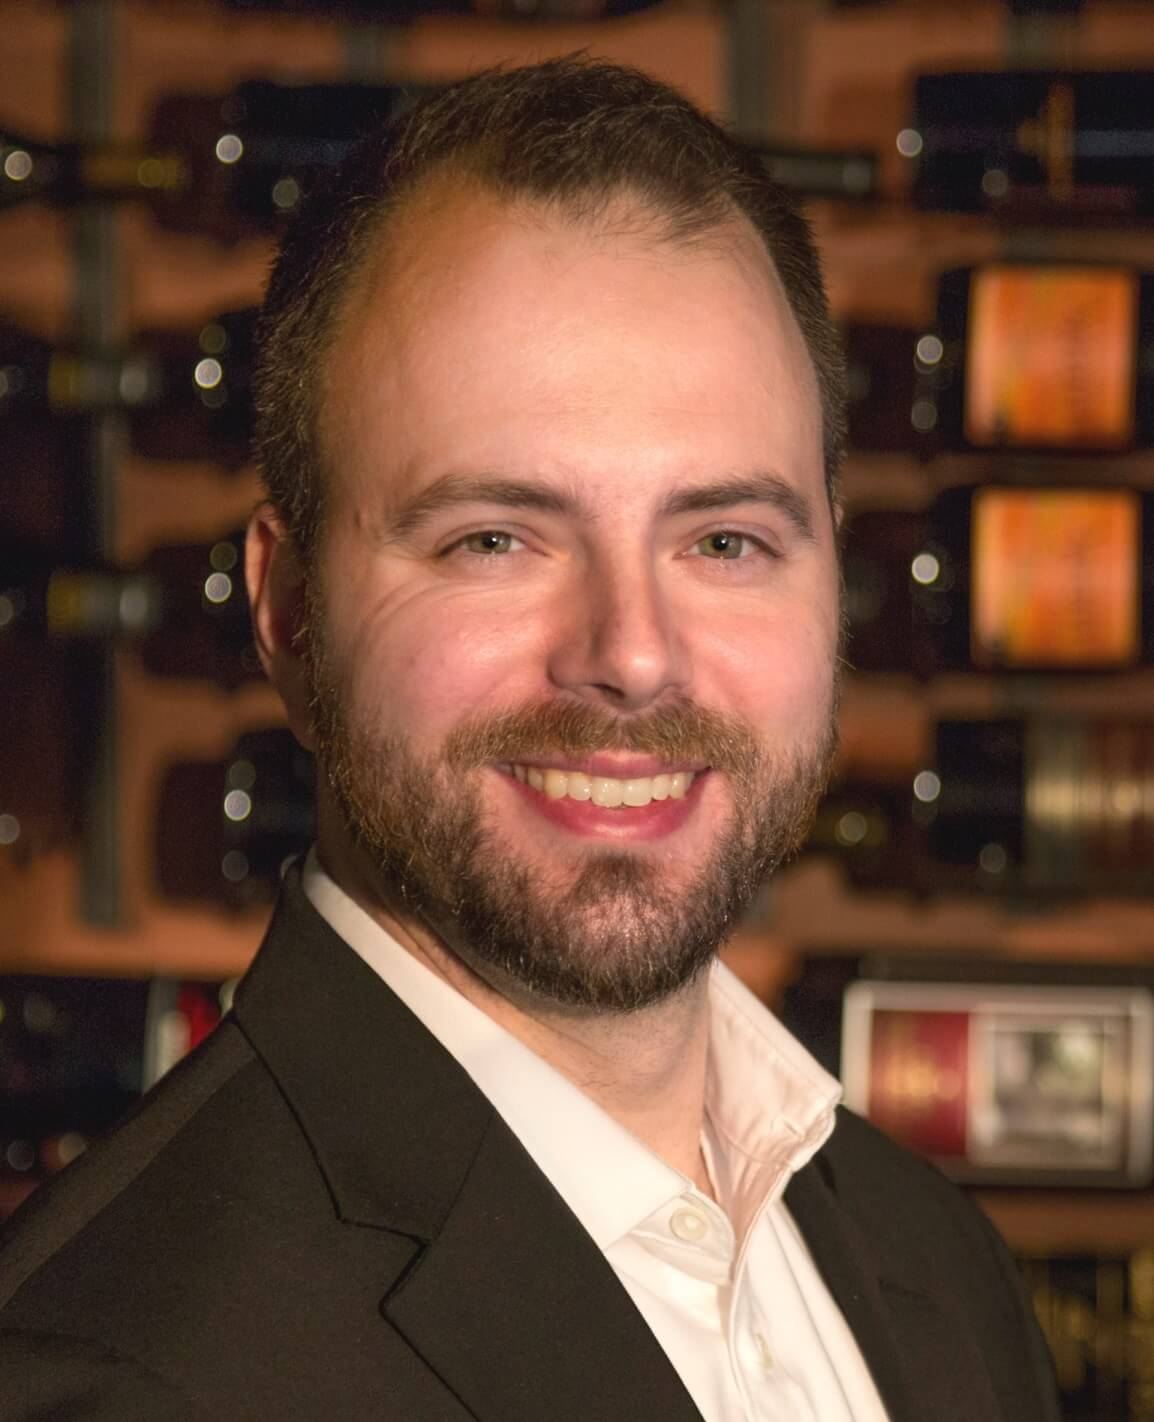 Benchmark names new Wine Director and Restaurant Outlets Manager For Willows Lodge